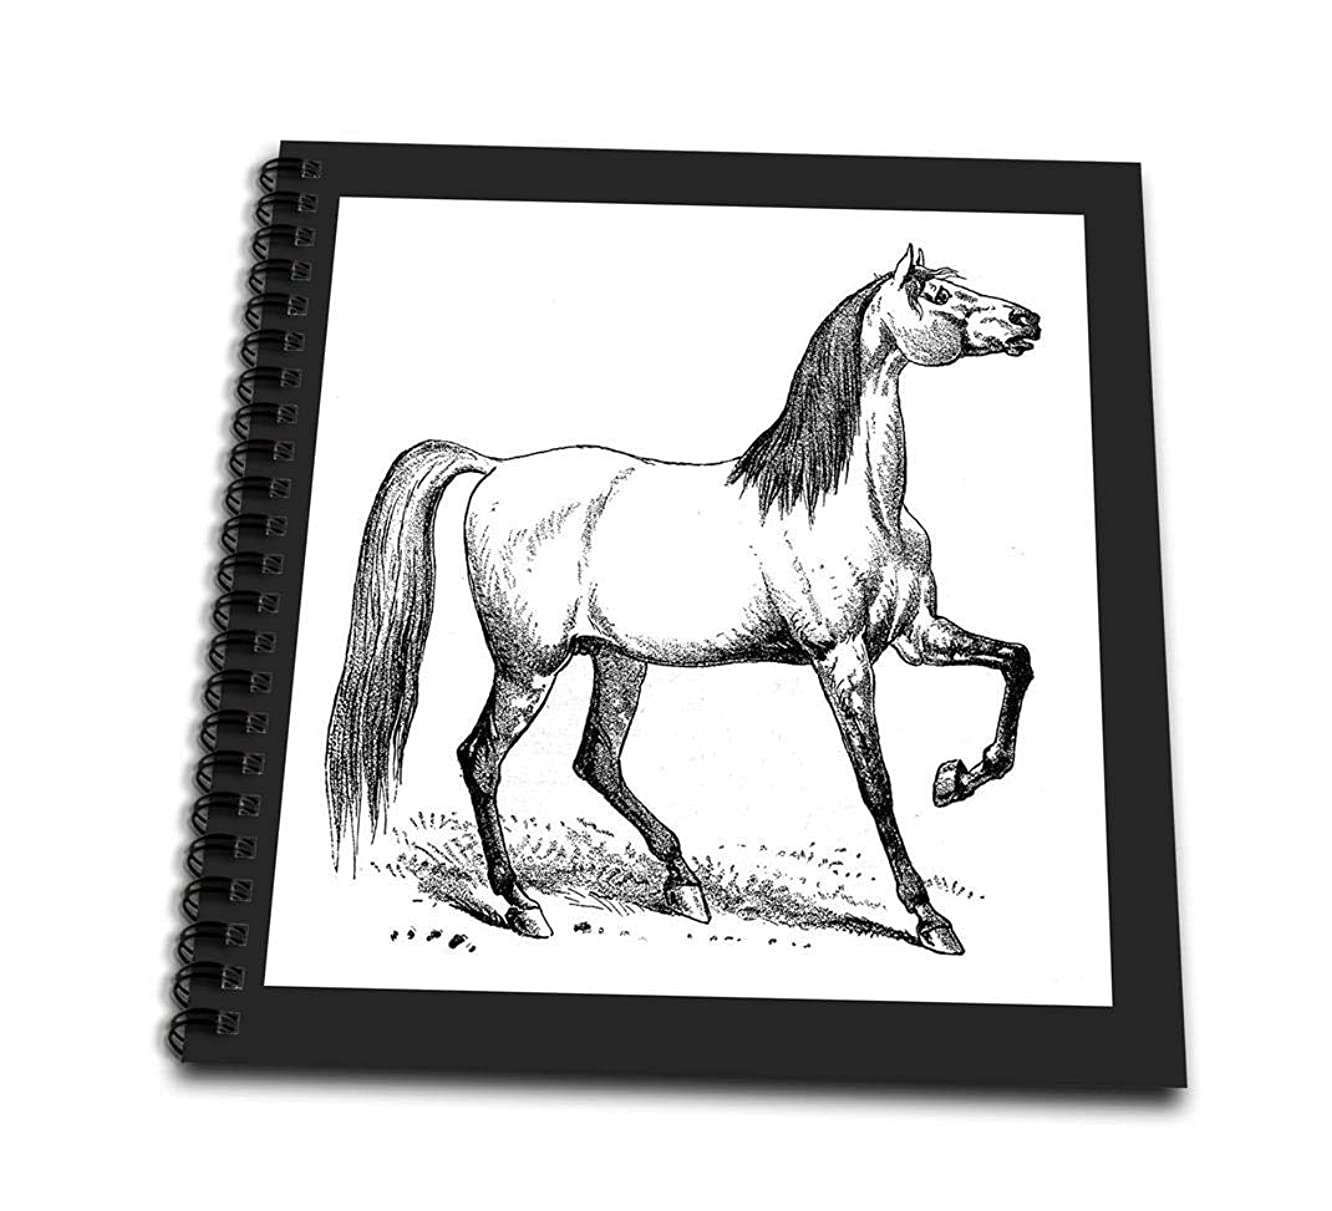 3dRose db_46521_1 Vintage Horse Sketch-Drawing Book, 8 by 8-Inch